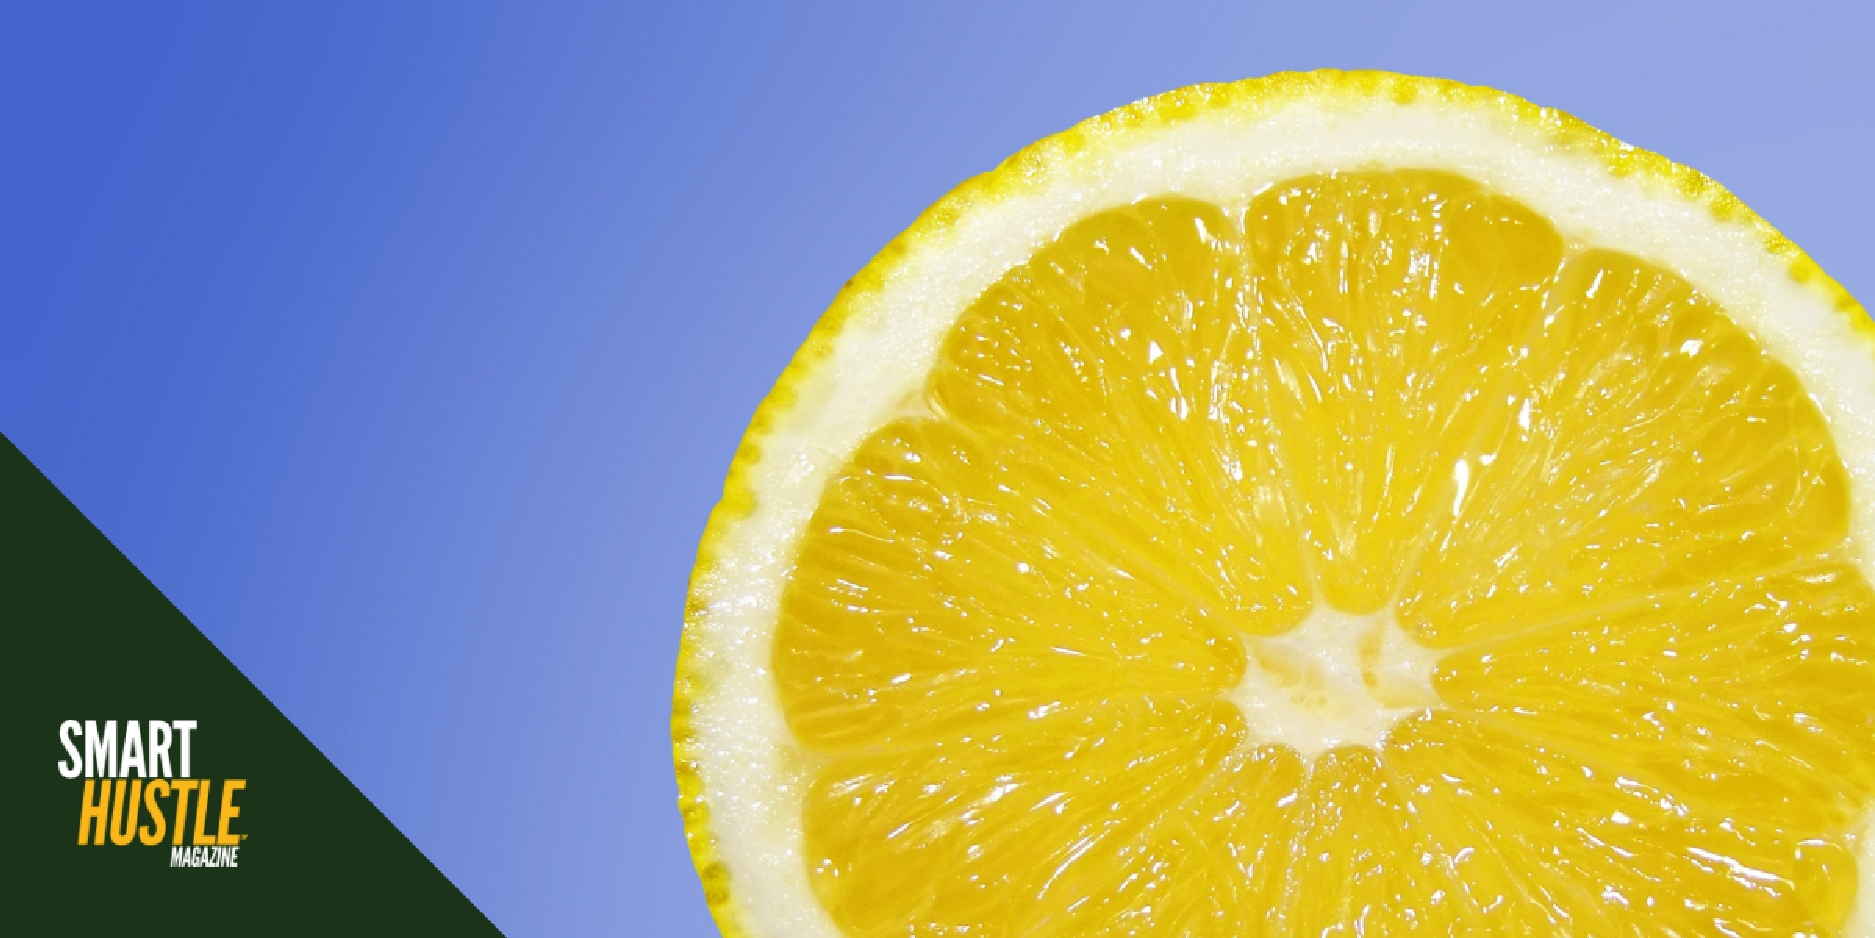 5 Ways to Turn Life's Lemons Into Lemonade